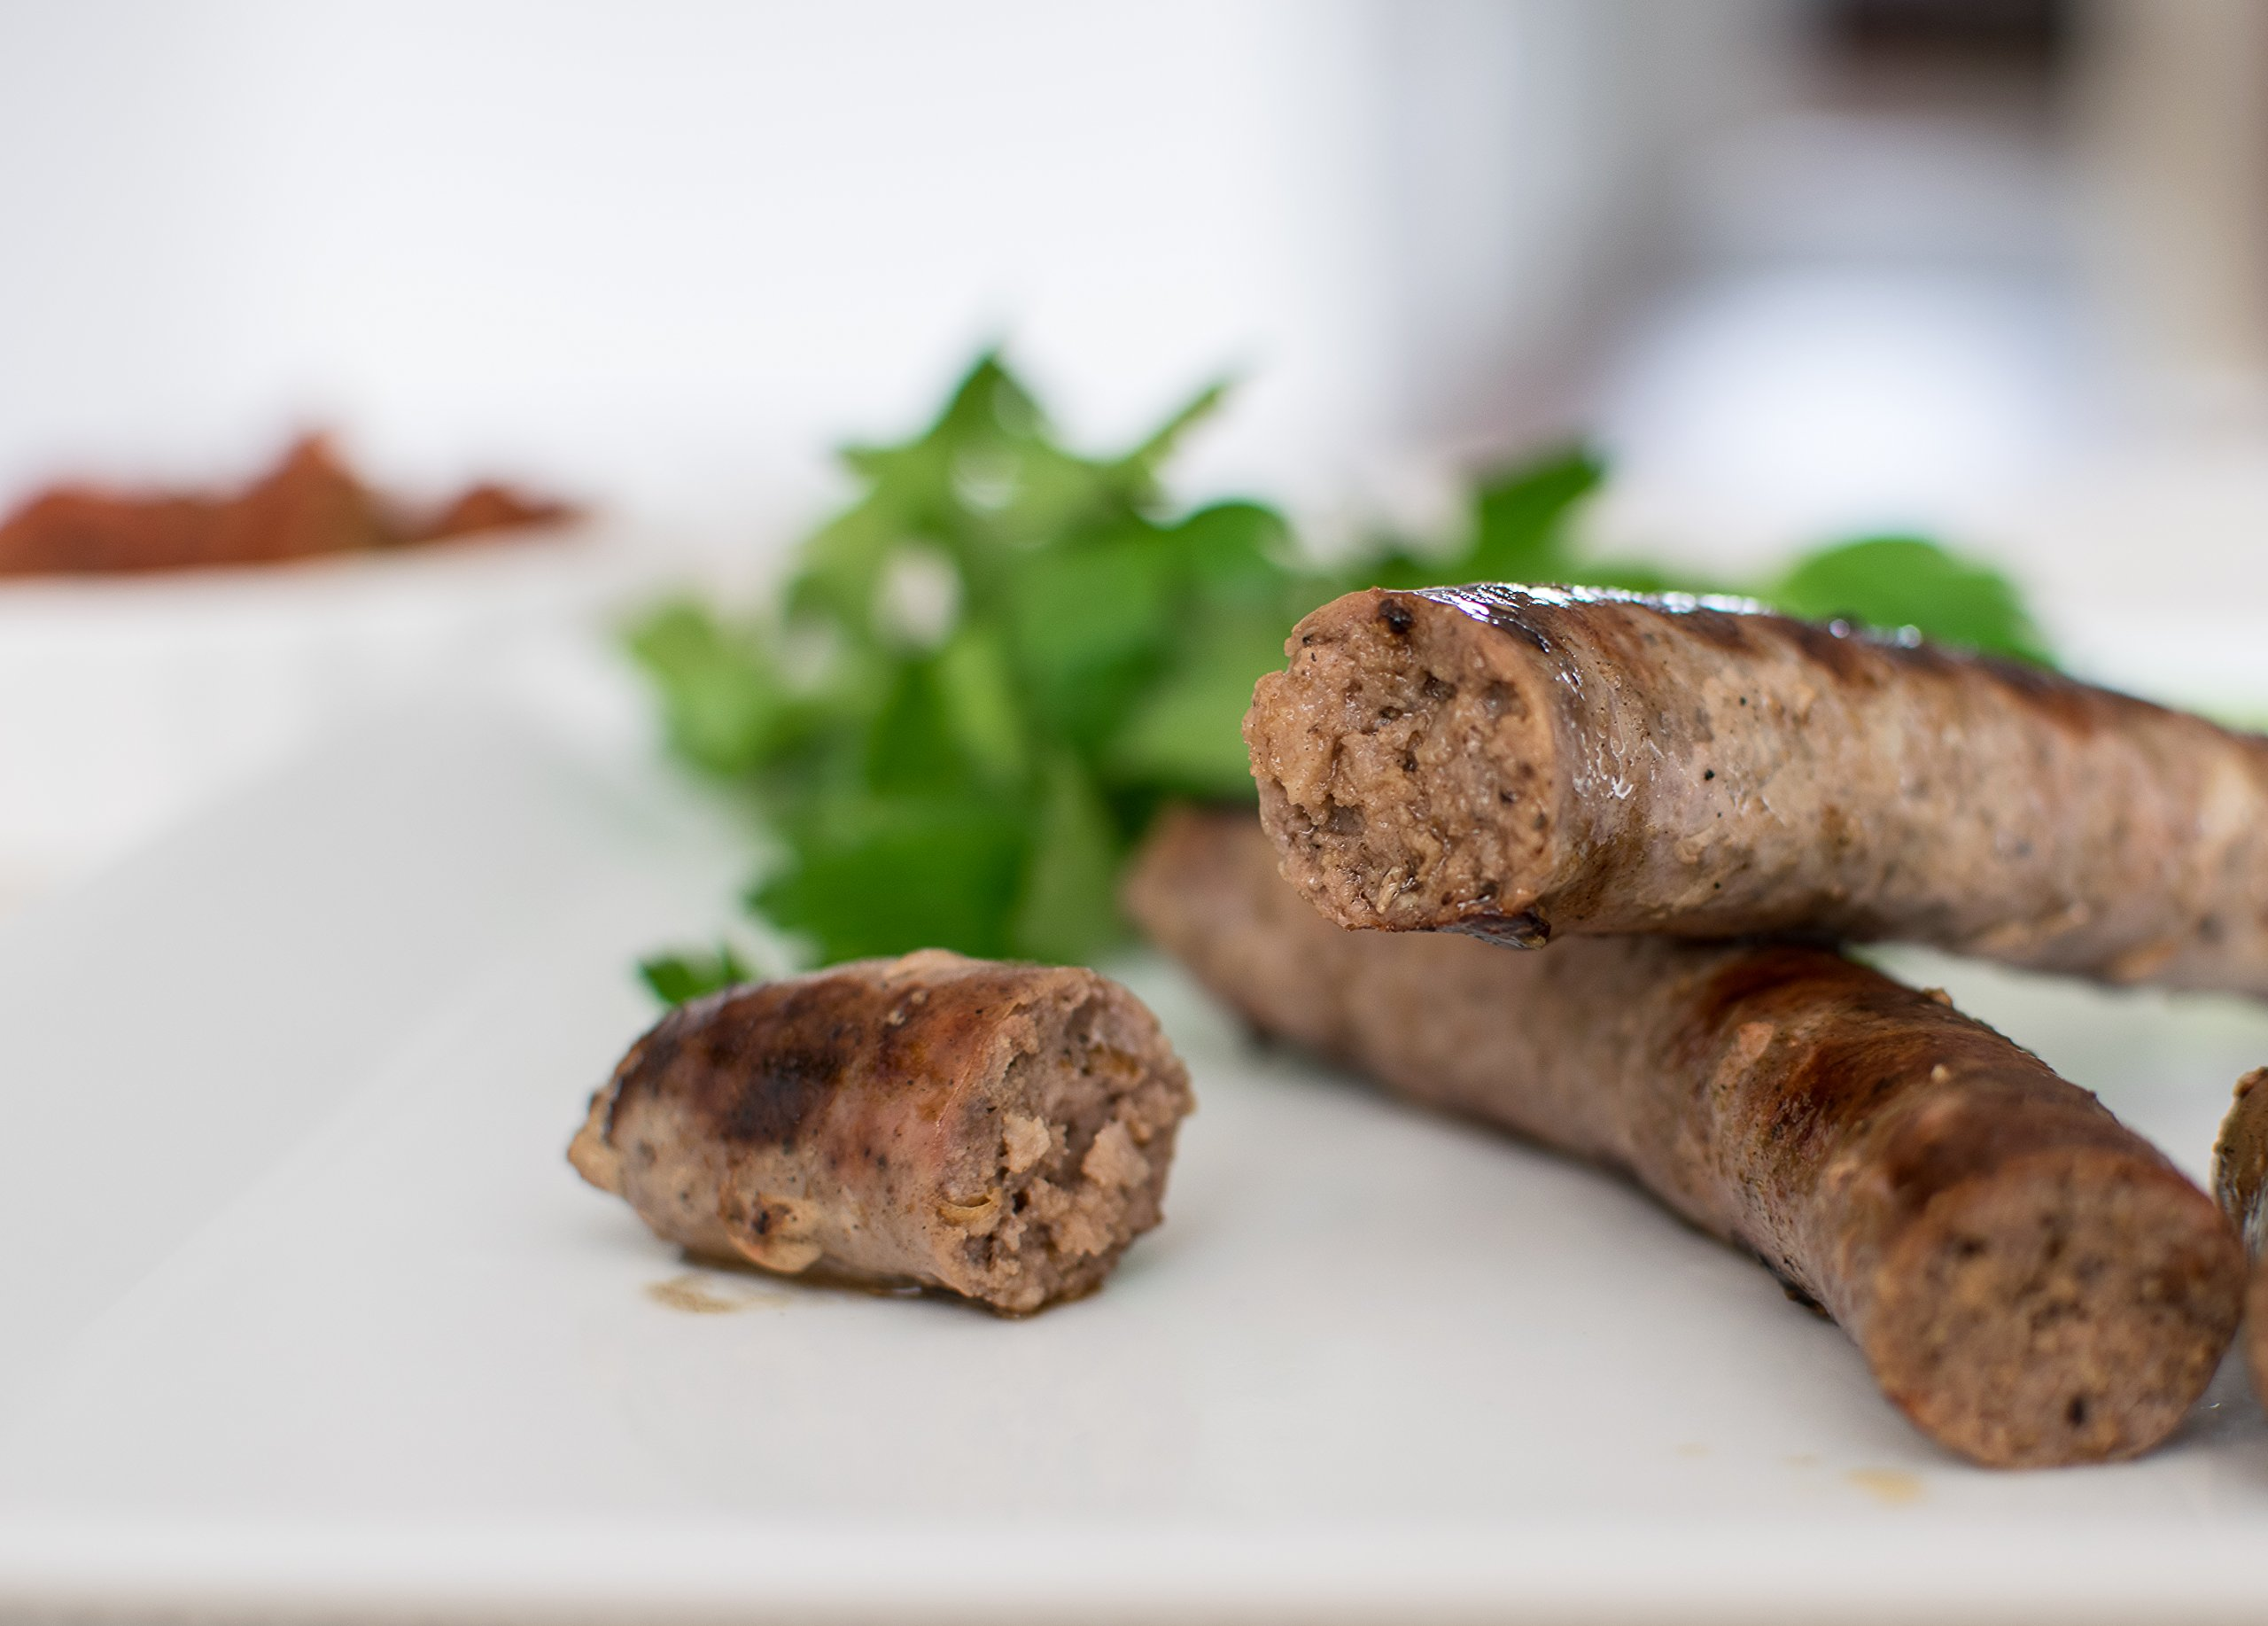 BBQ Sausage - Wagyu Beef Breakfast Sausage in Sheep Casing 2oz links x 8 (1lb) x 4 packs by SOL Sausage